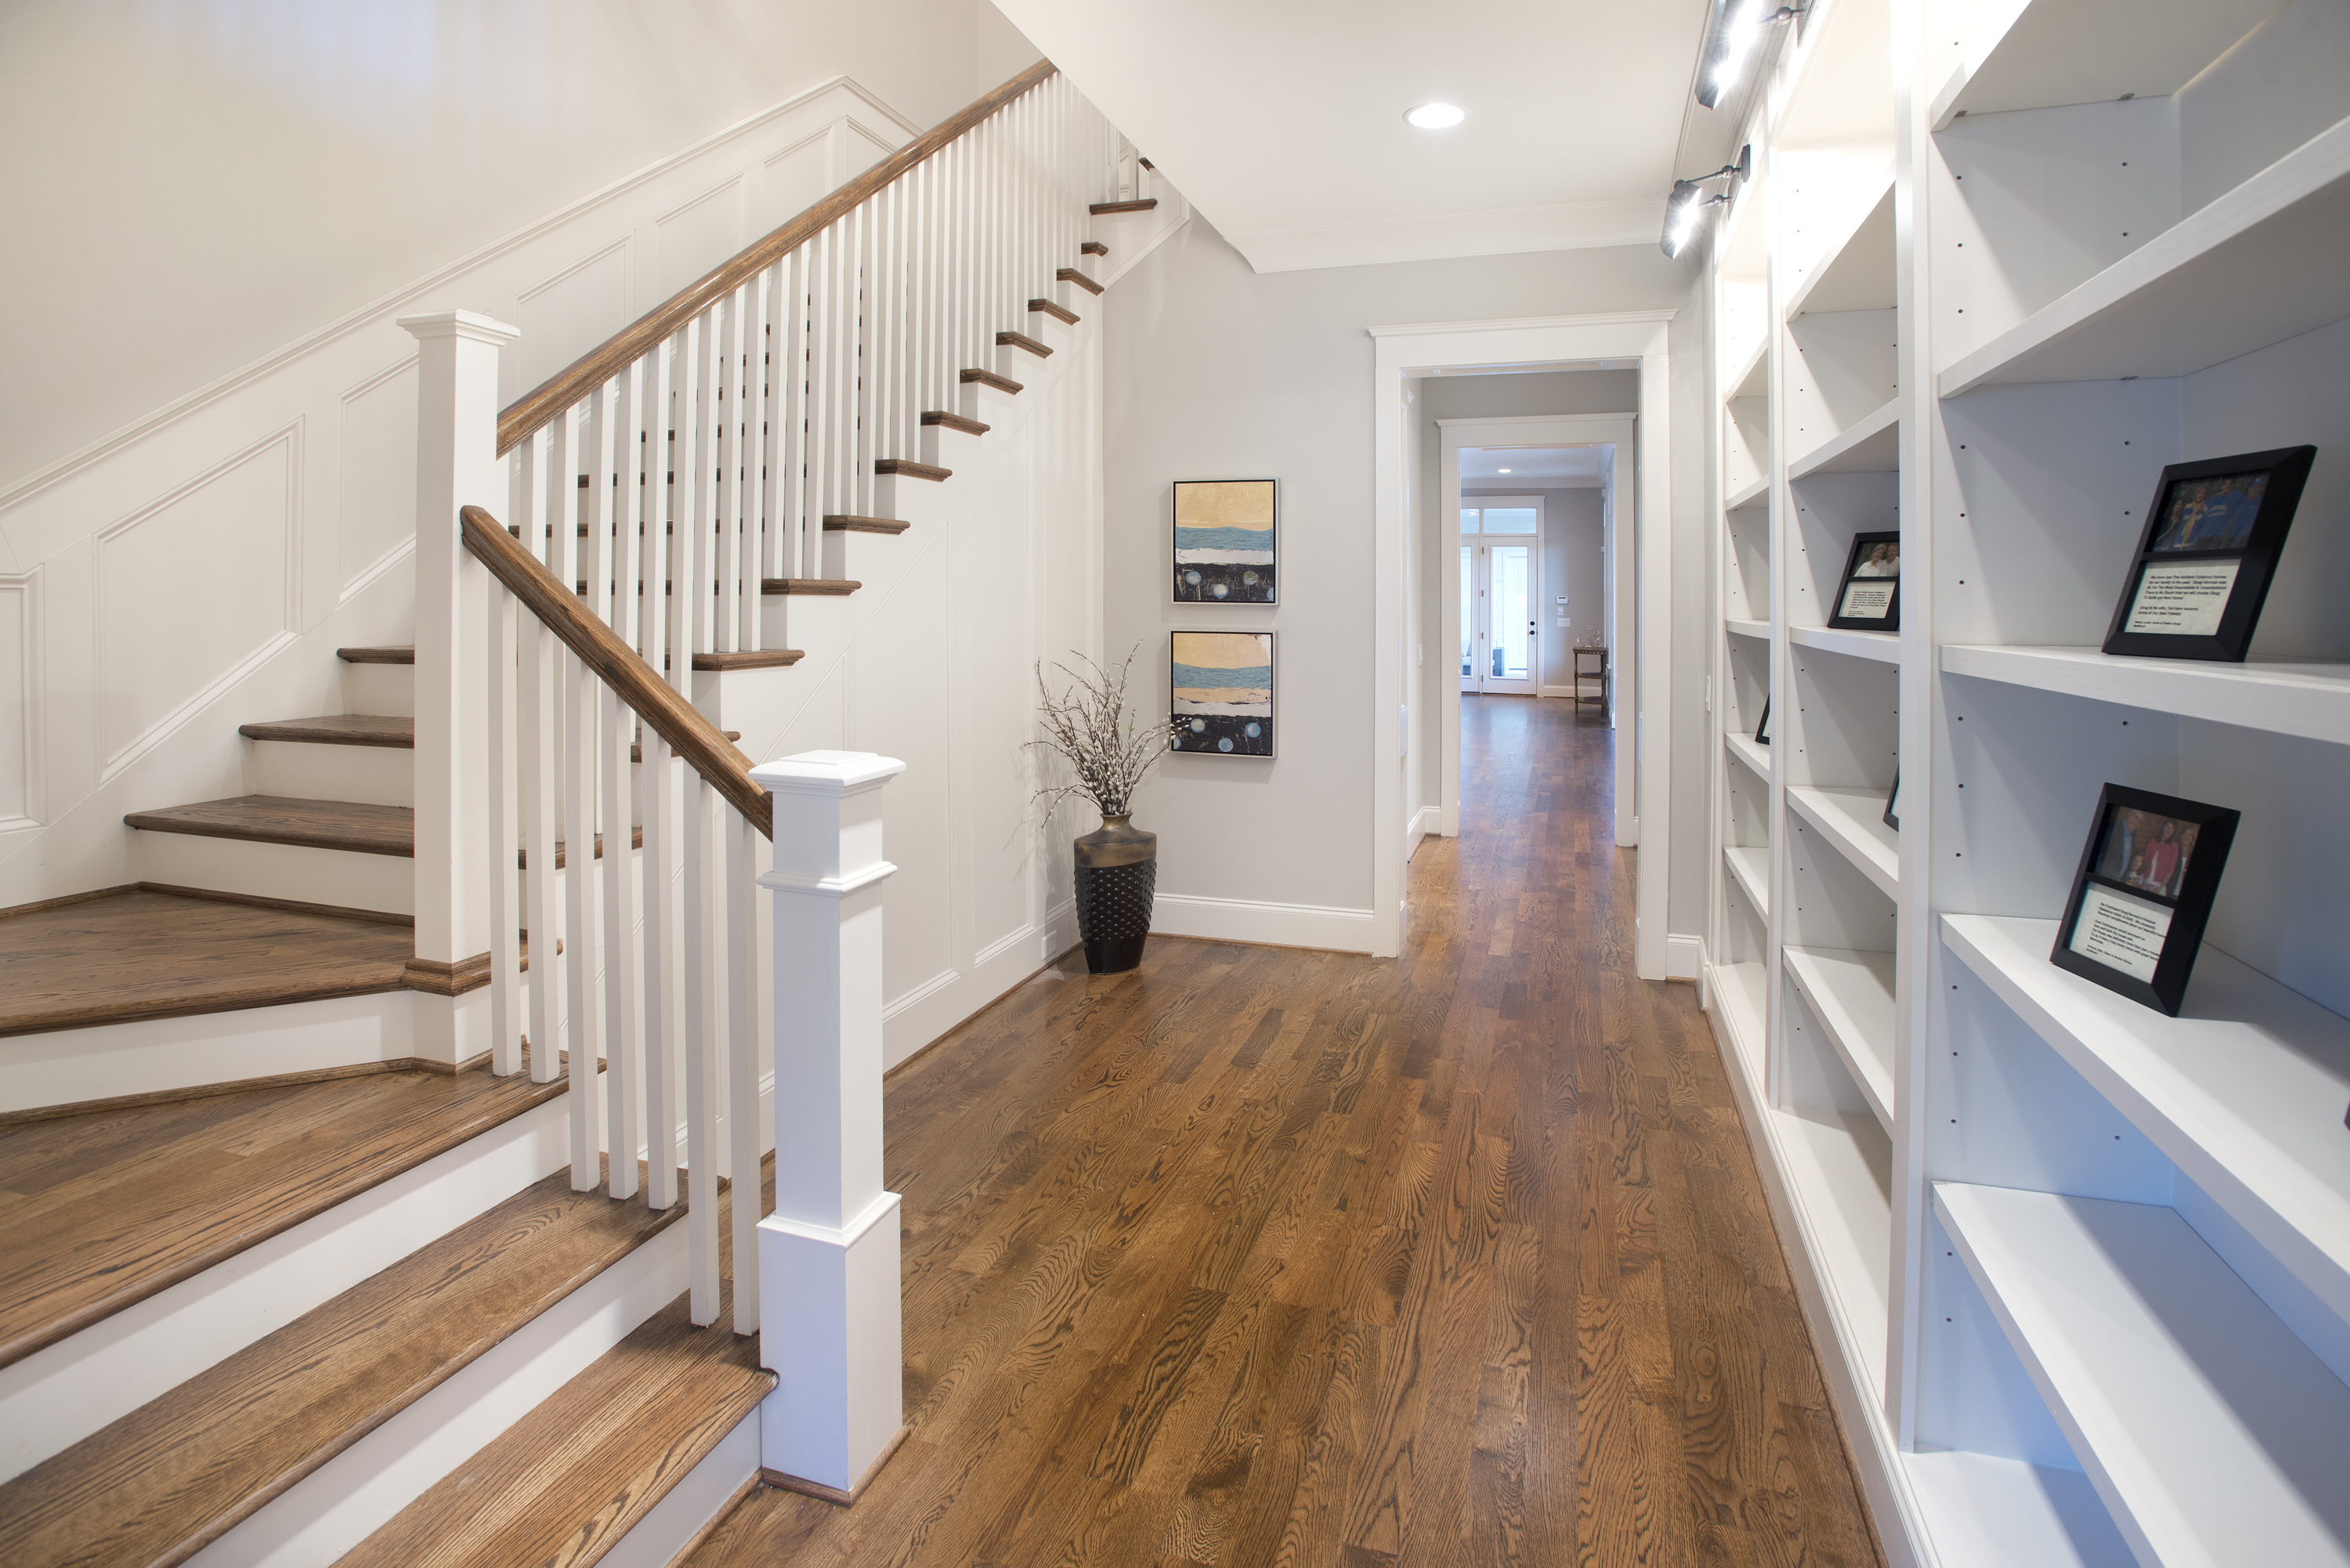 built in shelving and wood floors